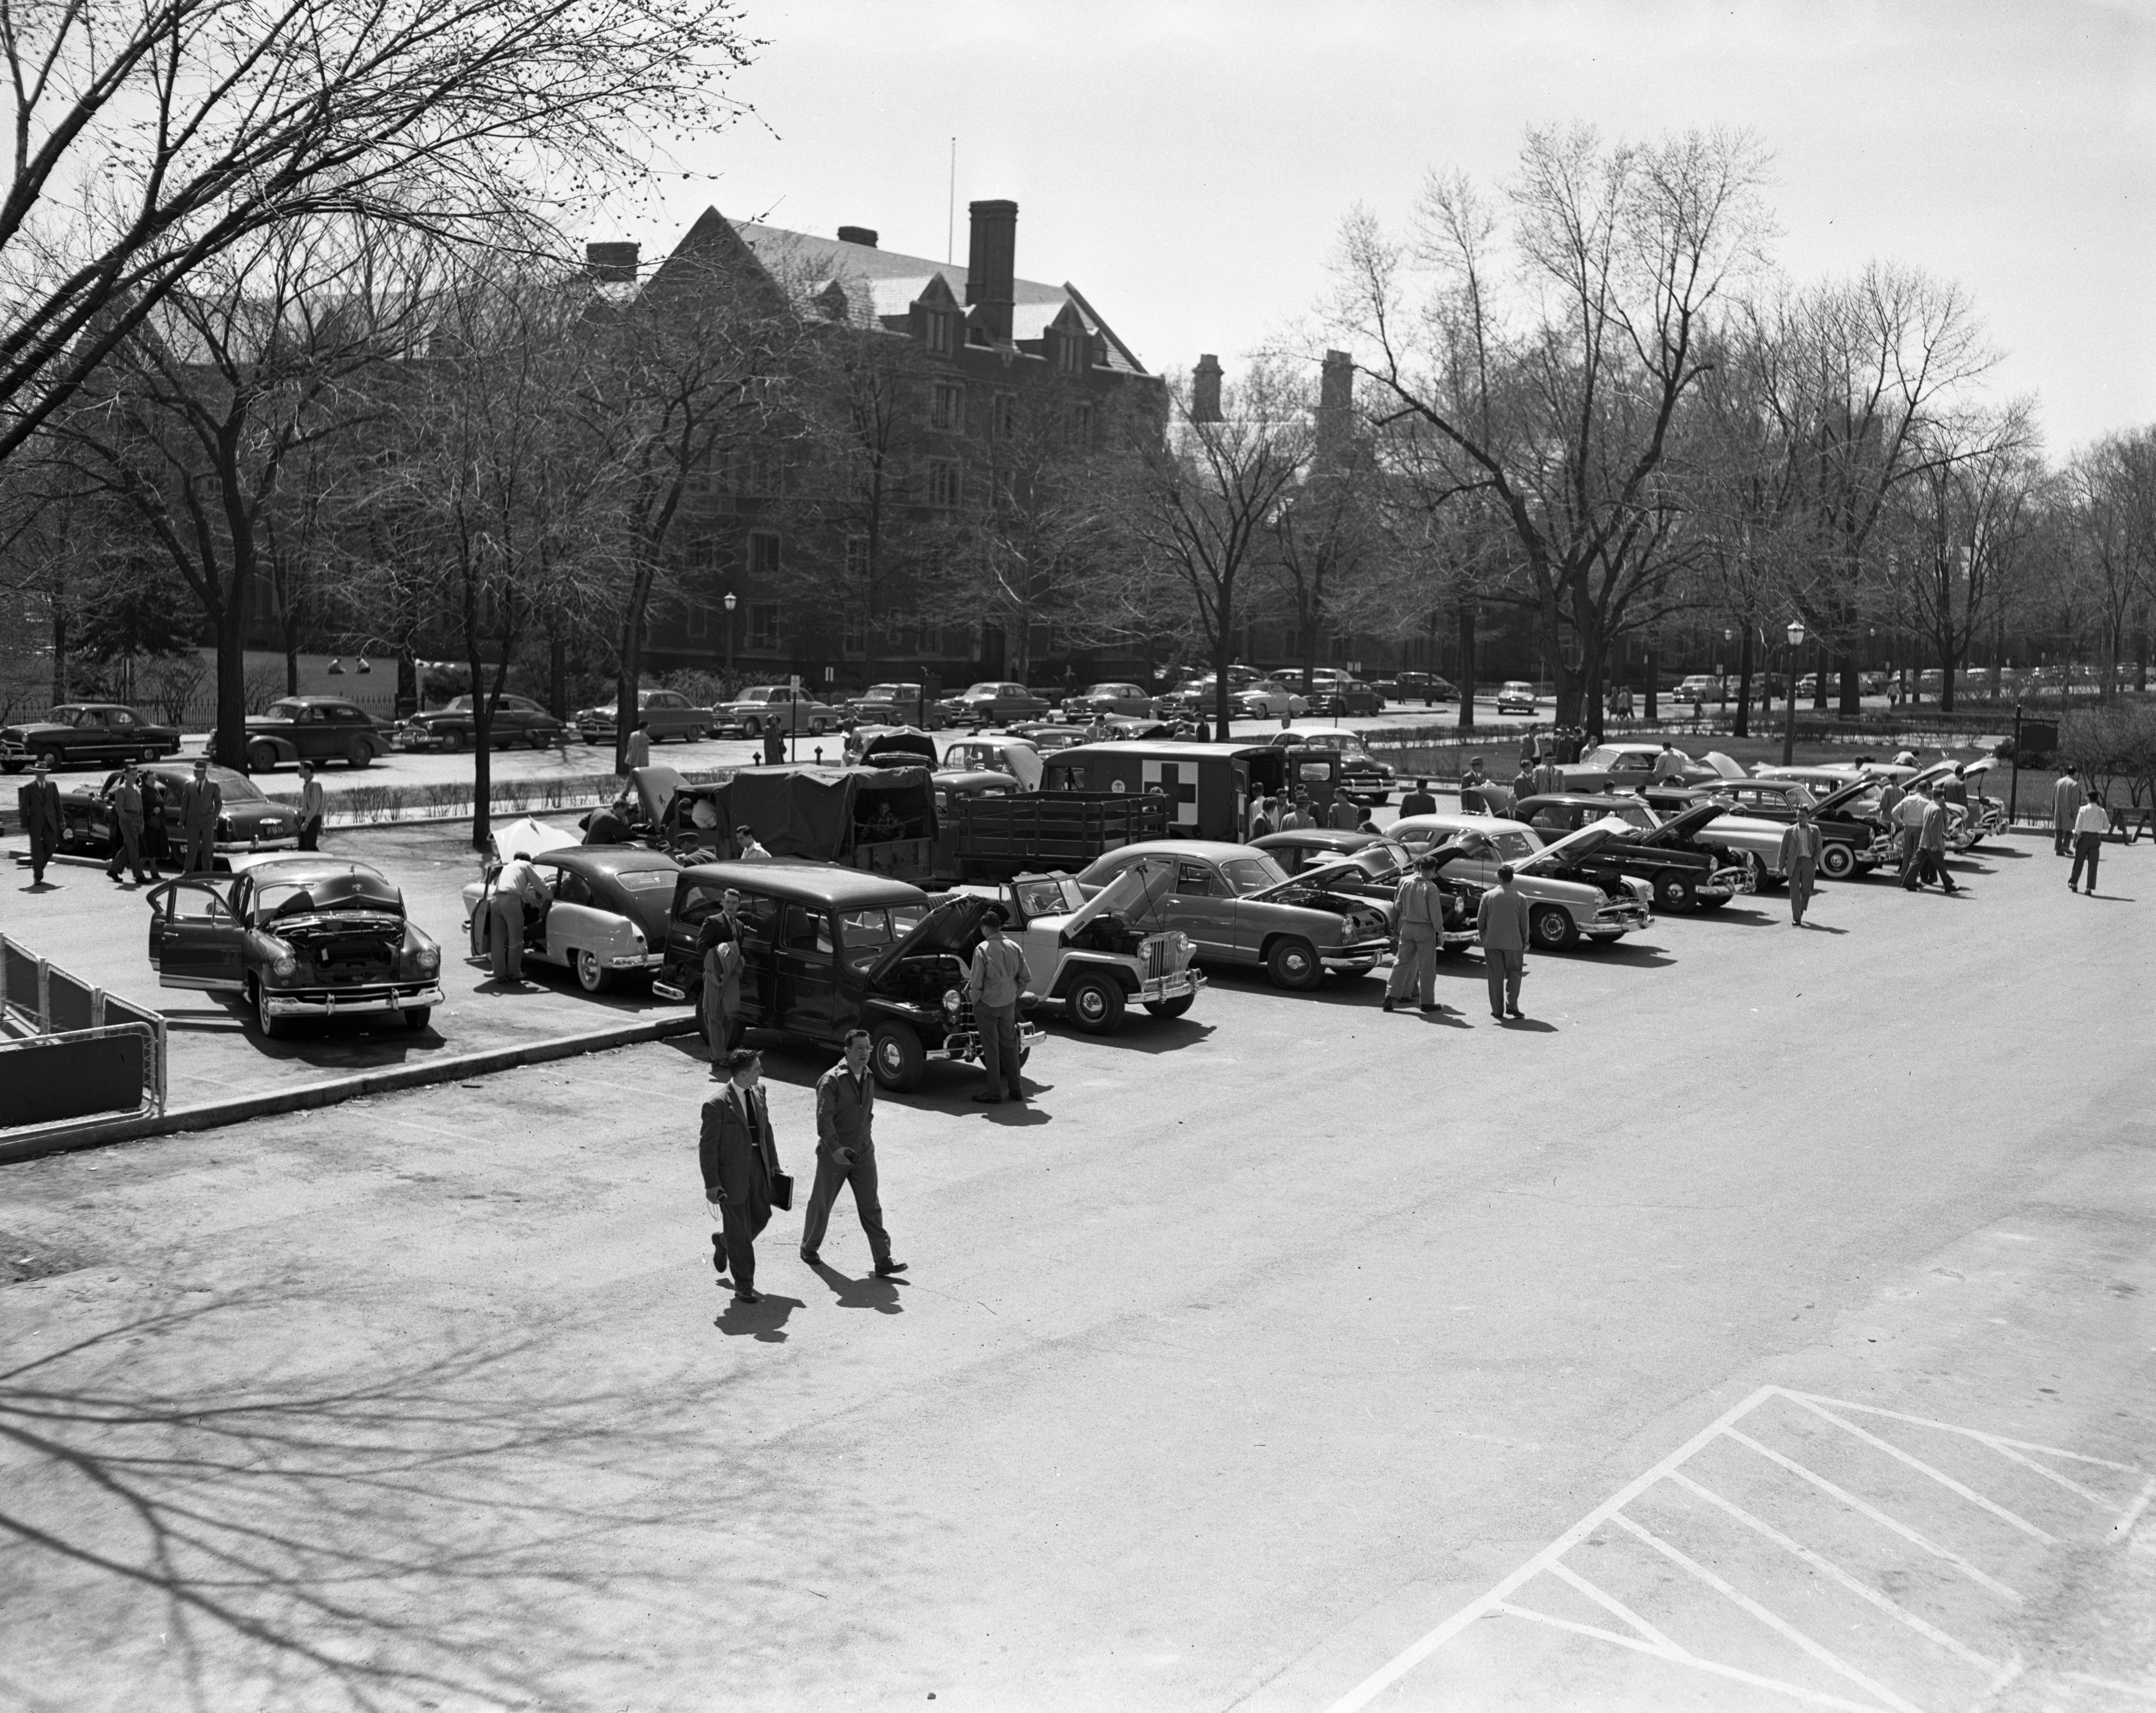 University of Michigan Engineering School Auto Show and Open House, April 1951 image